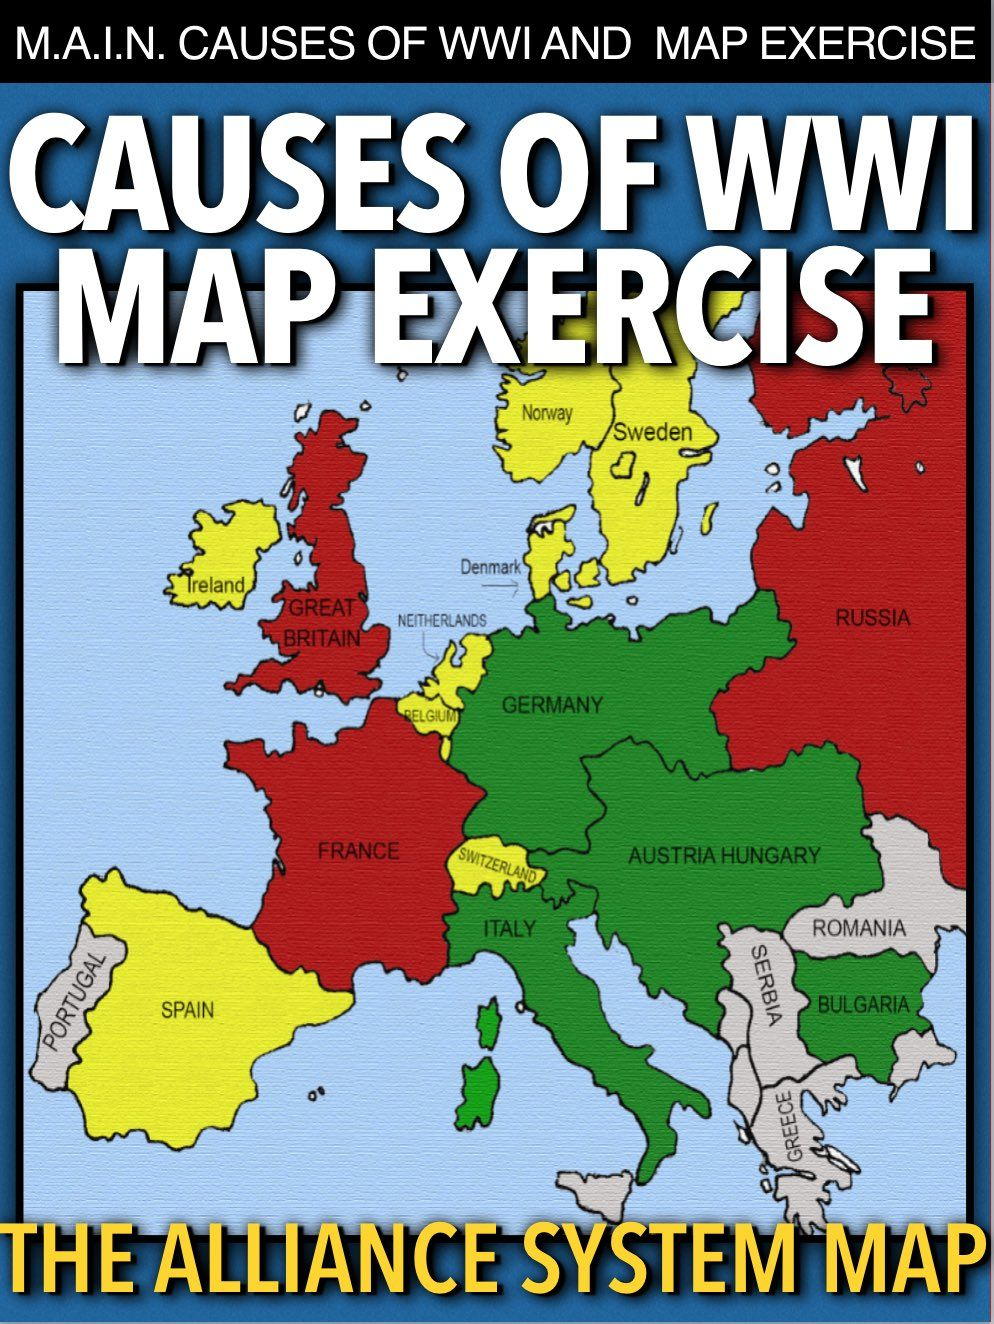 World war i map activity main causes ww1 map activities world war i map activity main causes takes students to europe 1914 to discuss the main causes of world war 1 then students learn about the alliance fandeluxe Choice Image